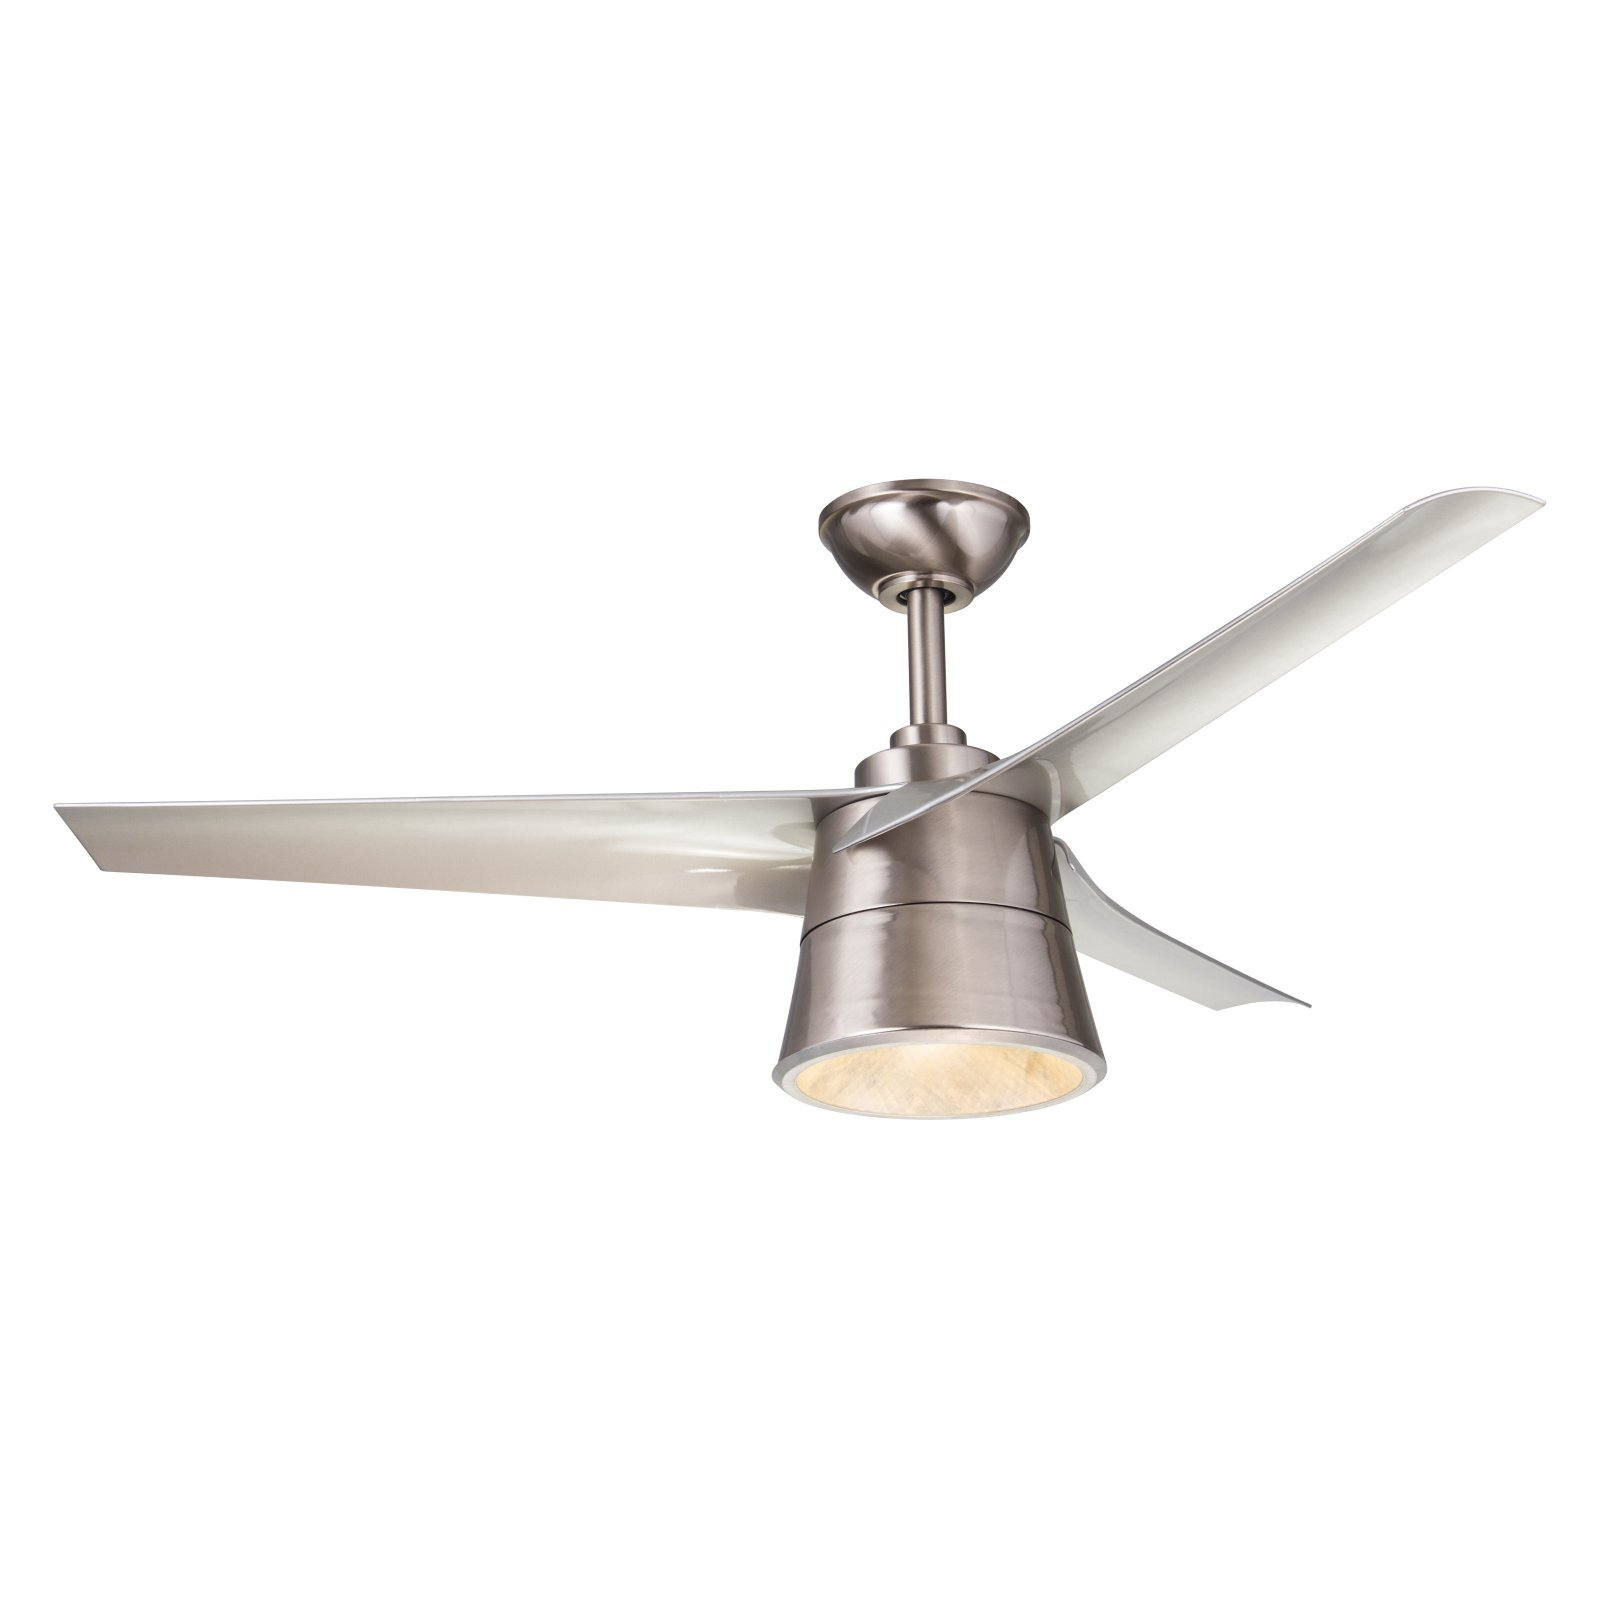 Famous Dennis 3 Blade Ceiling Fans With Wind River Cylon 52 In (View 12 of 20)